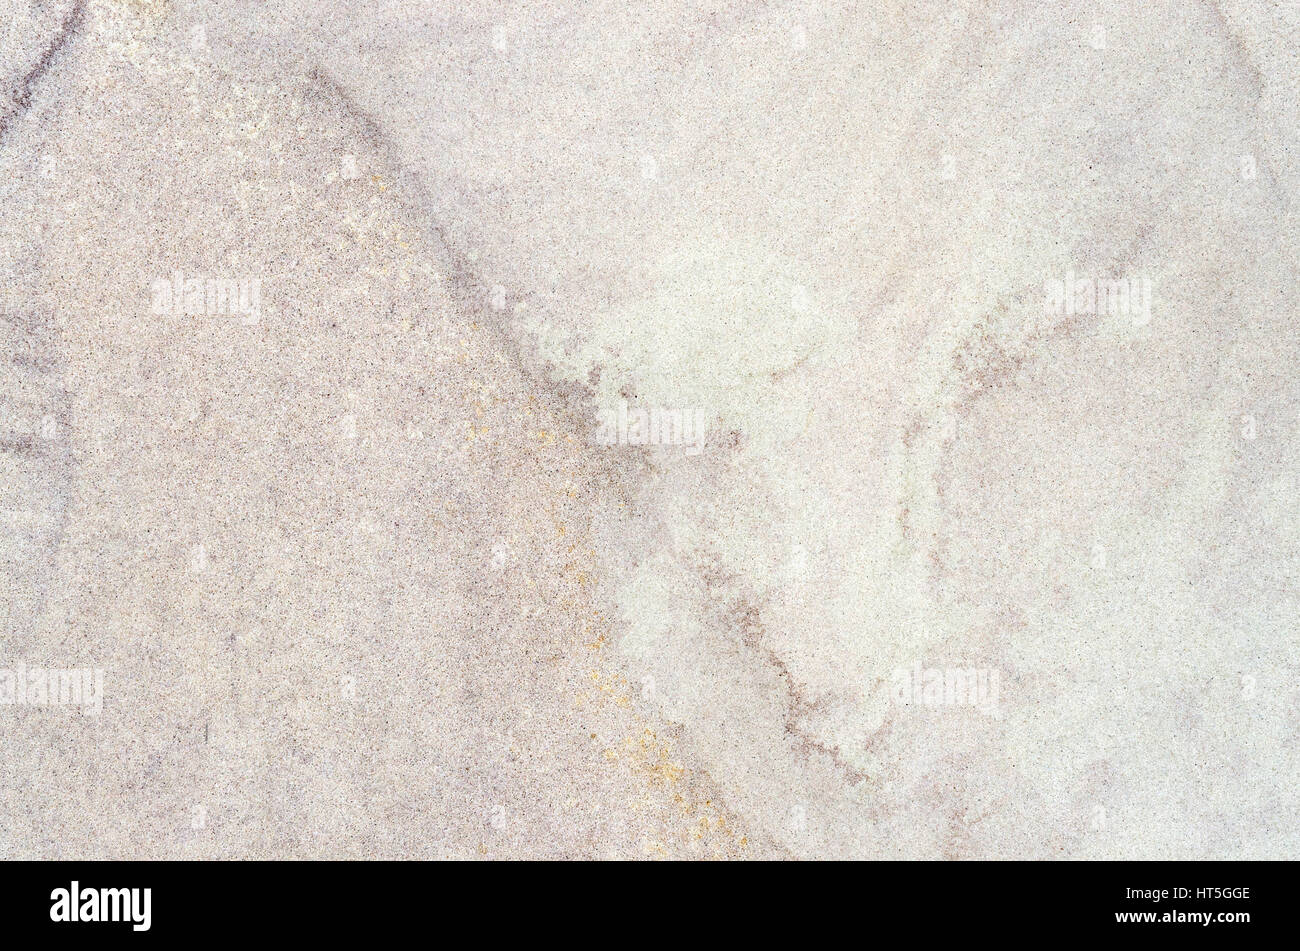 Marble texture with natural pattern usage for background or design artwork. - Stock Image